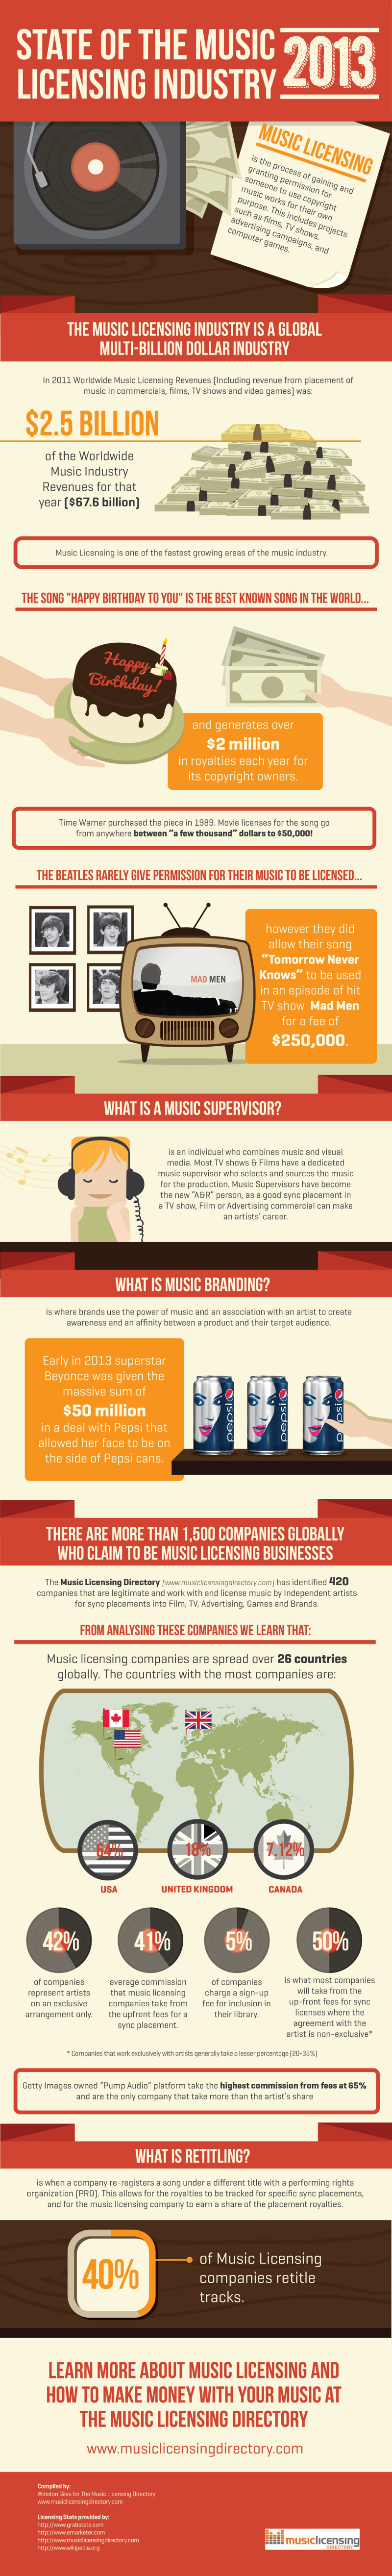 Music Licensing Industry Facts